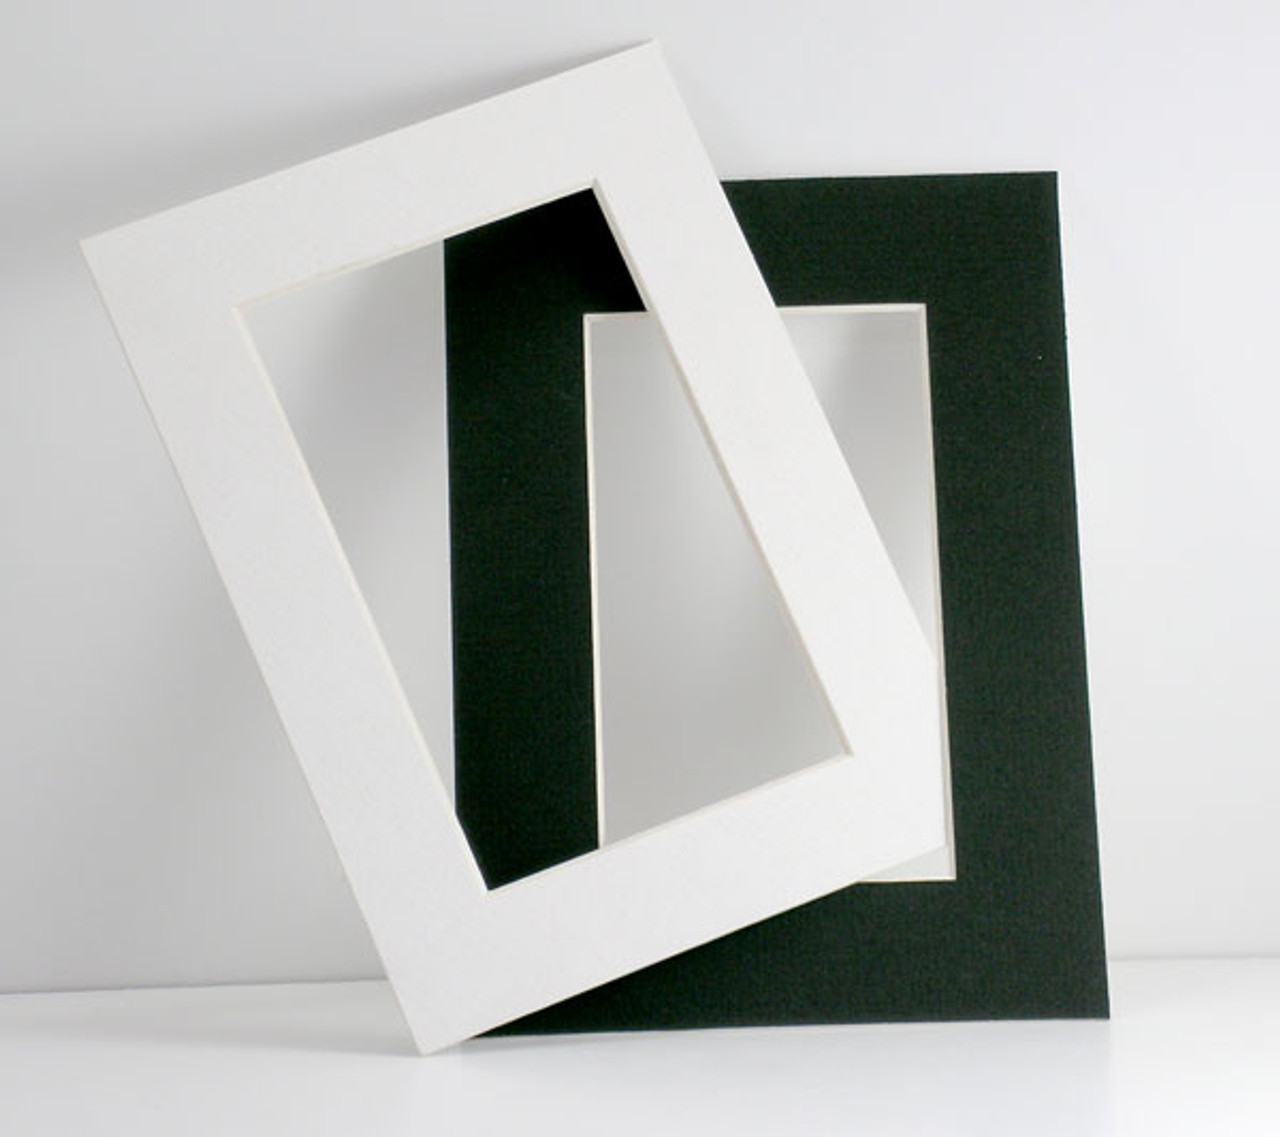 "12x16 Single 25 Pack (For Digital Sizes) (Conservation) - includes mats, 1/8"" Acid-Free Foamcore backing, sleeves and tape!"